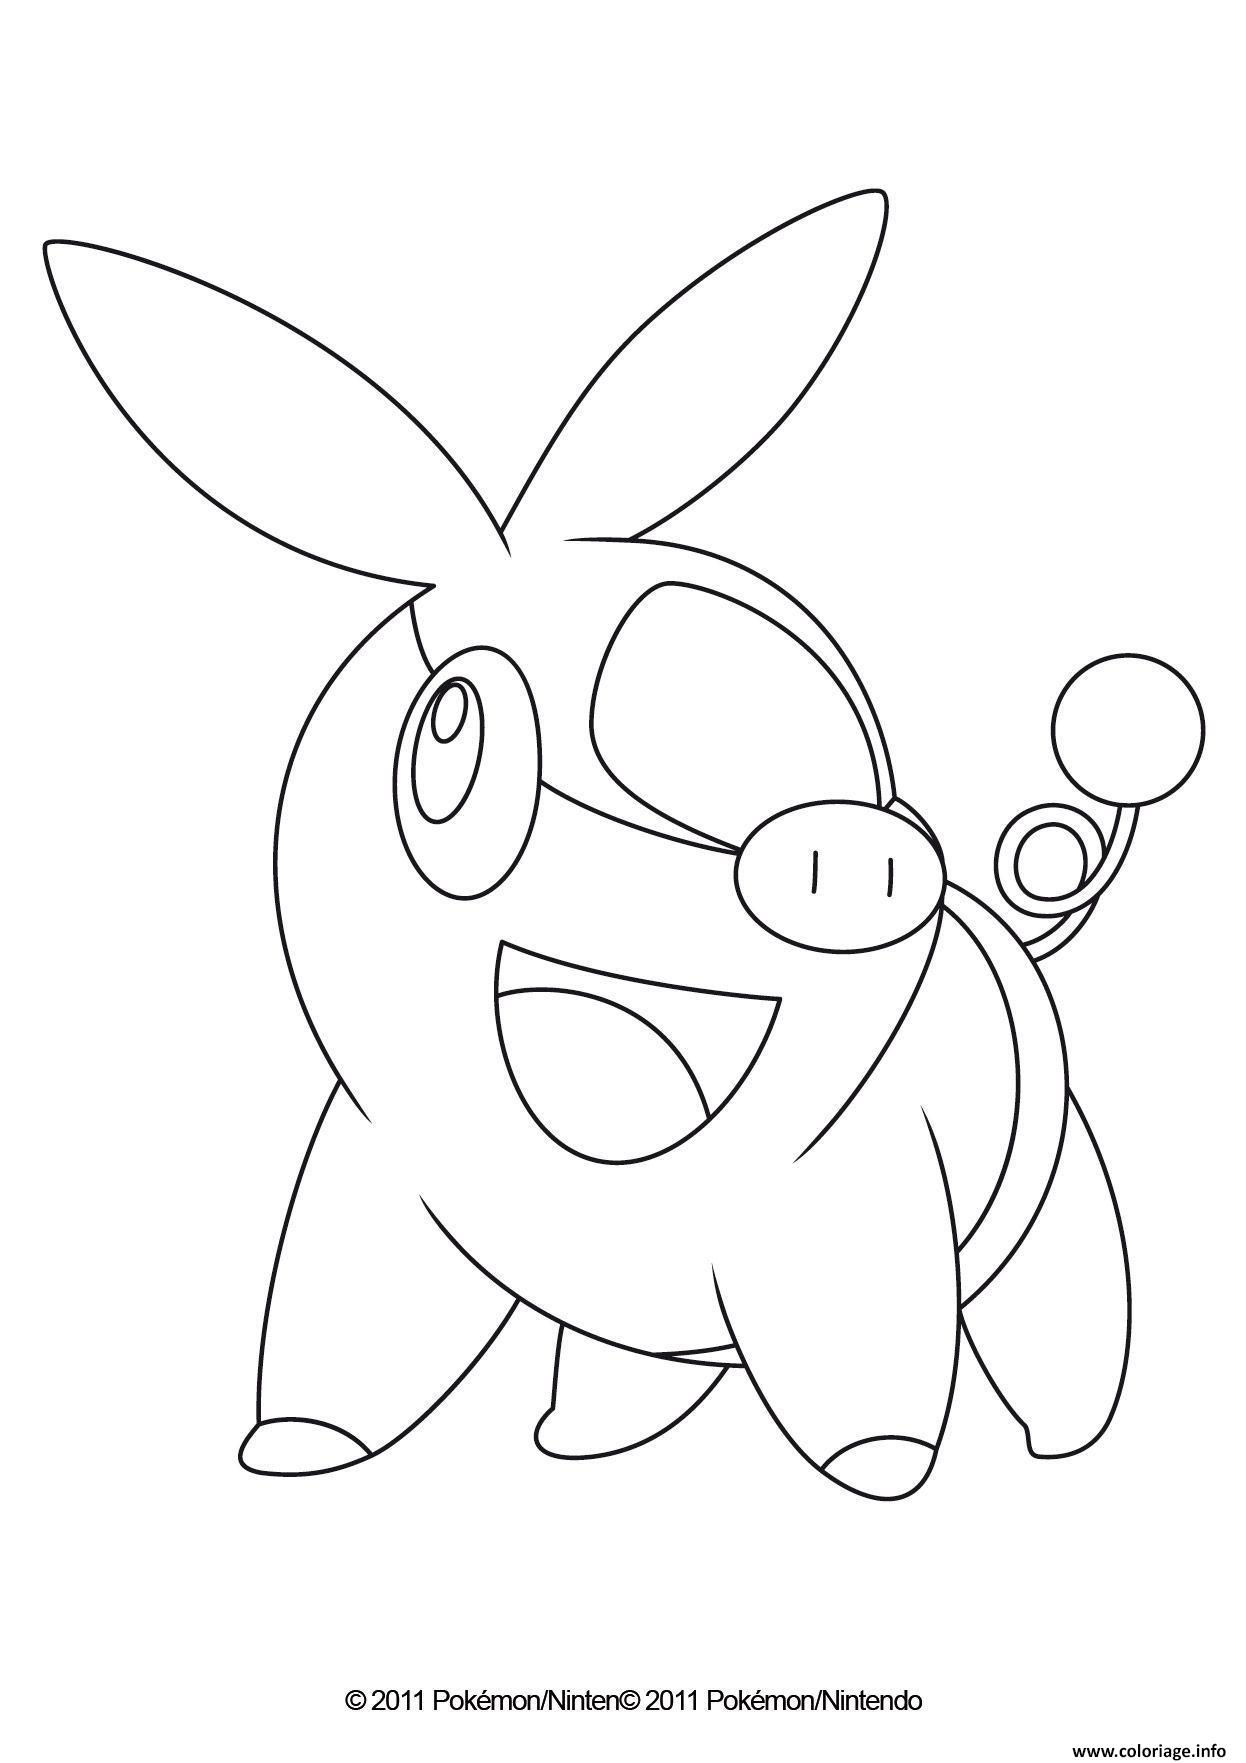 Coloriage Gruikui Pokemon Dessin